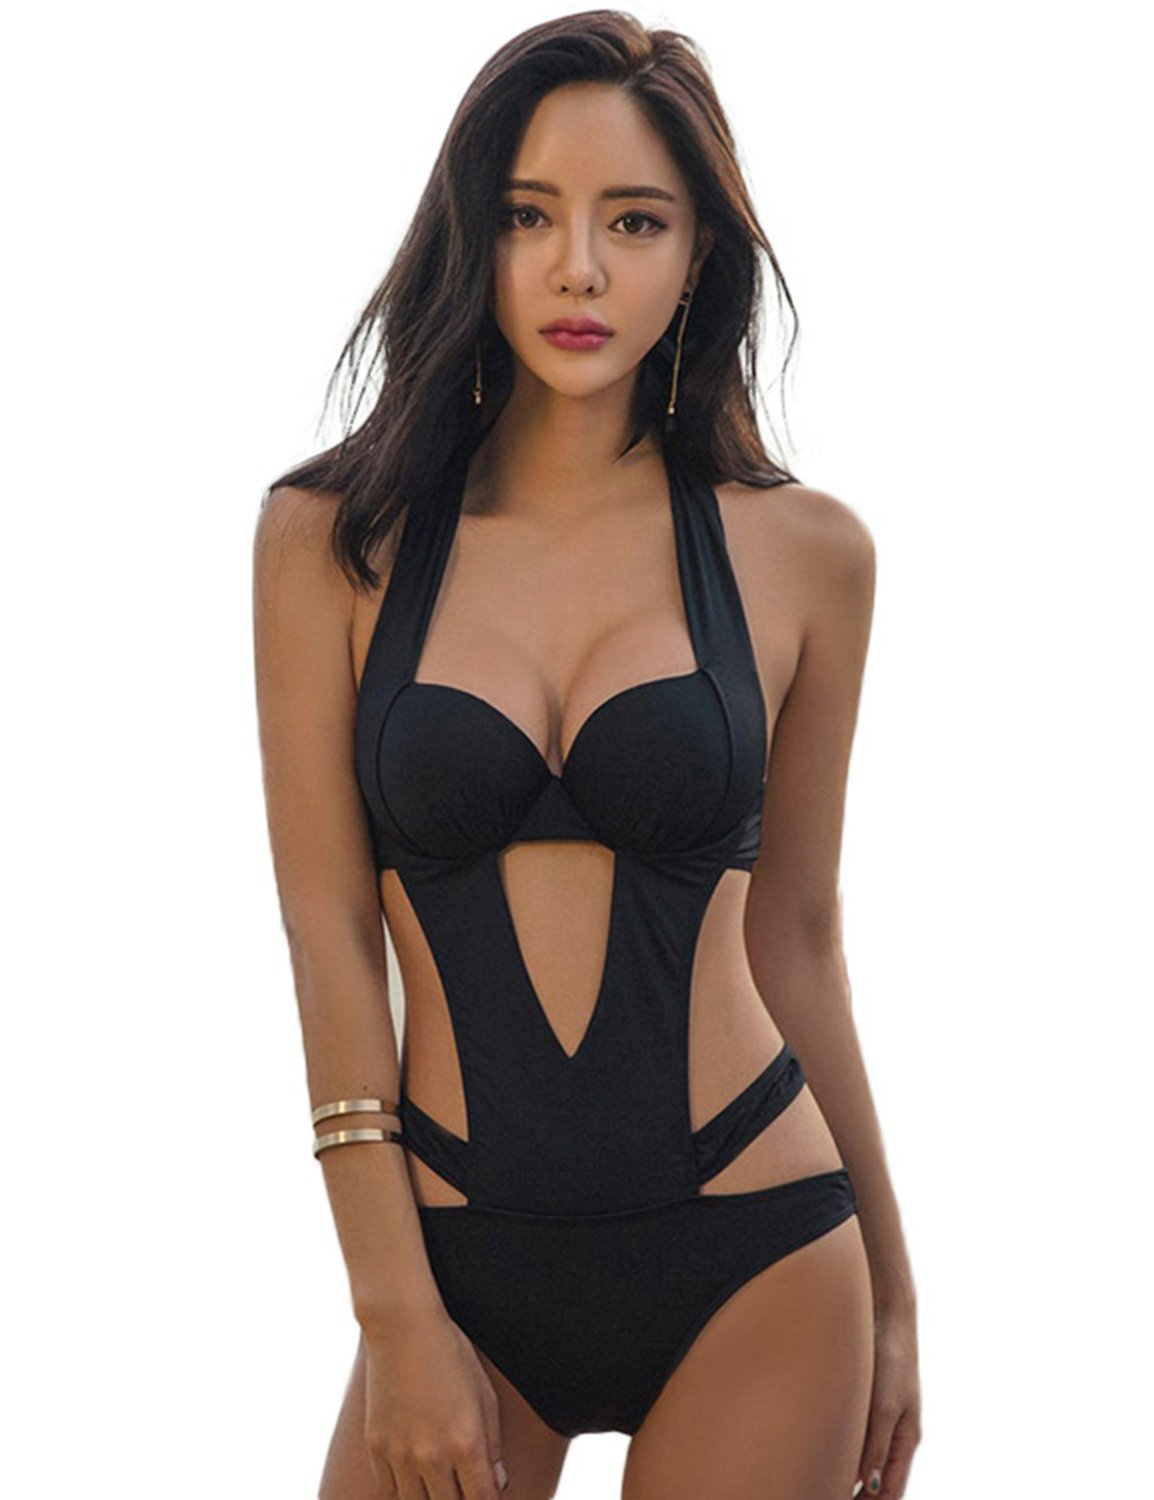 timeless design fa023 03386 Costume da Bagno Intero Donna Bikini Set Nappa Push Up Reggiseno Sexy Mare  Costumi Interi One Piece Trikini Beachwear - FACESHOPPING